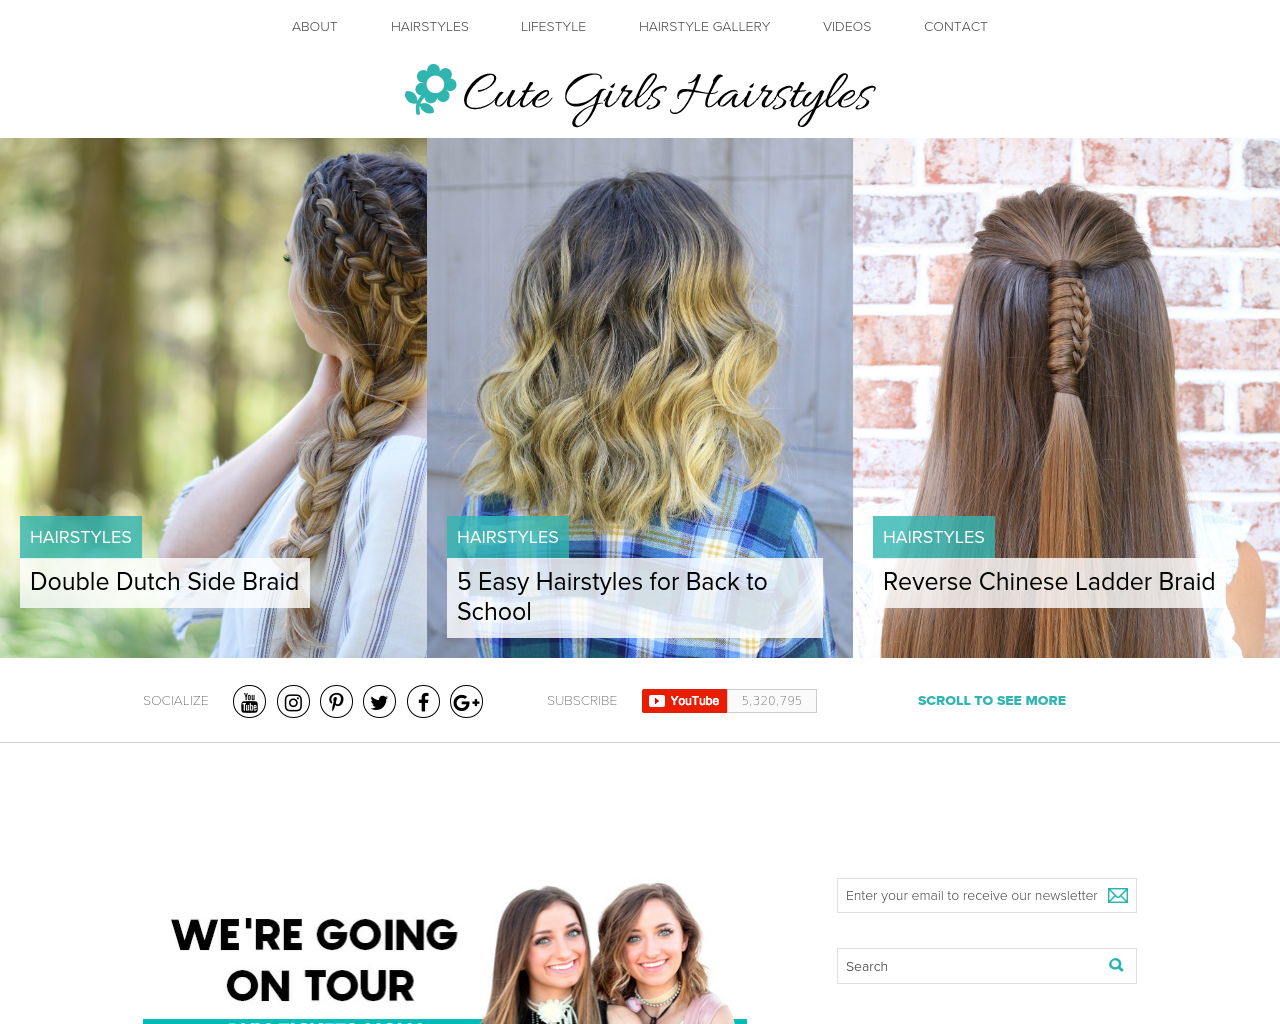 Cute-Girls-Hairstyles-Advertising-Reviews-Pricing